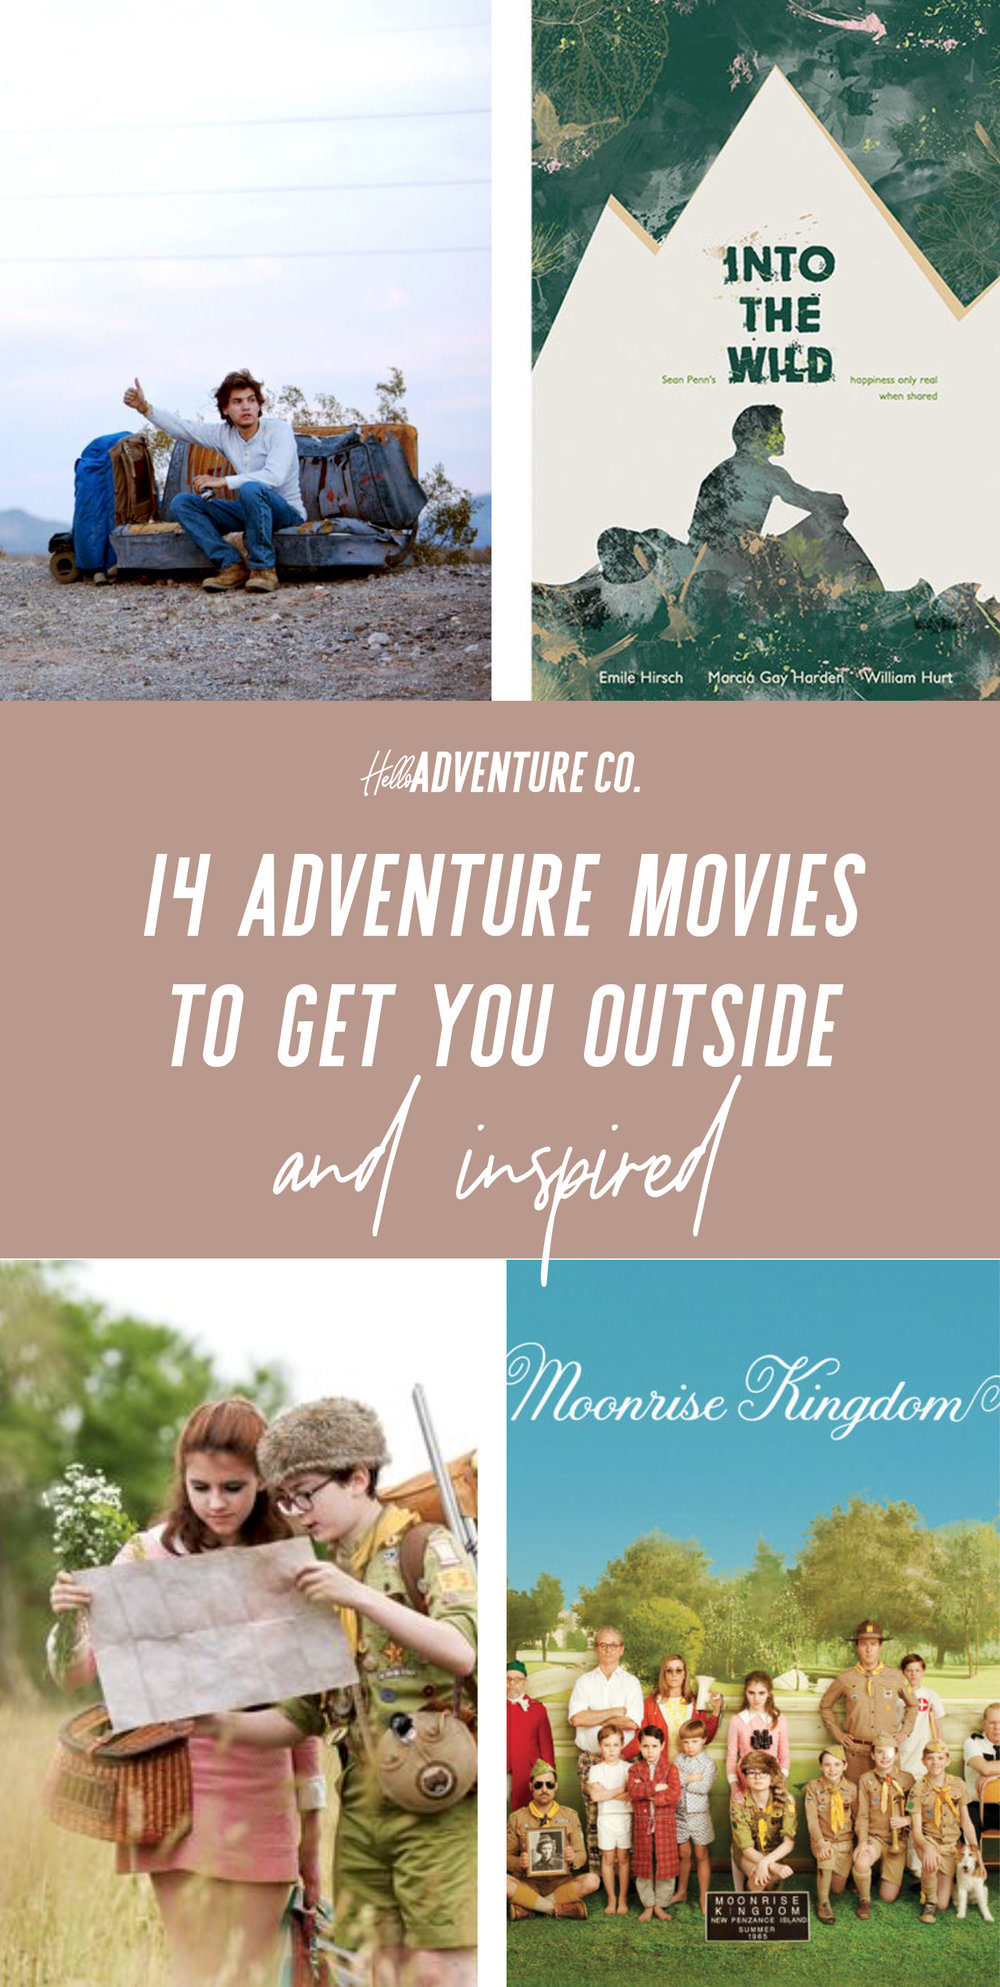 14 Adventure Movies to Get You Outside and Inspired